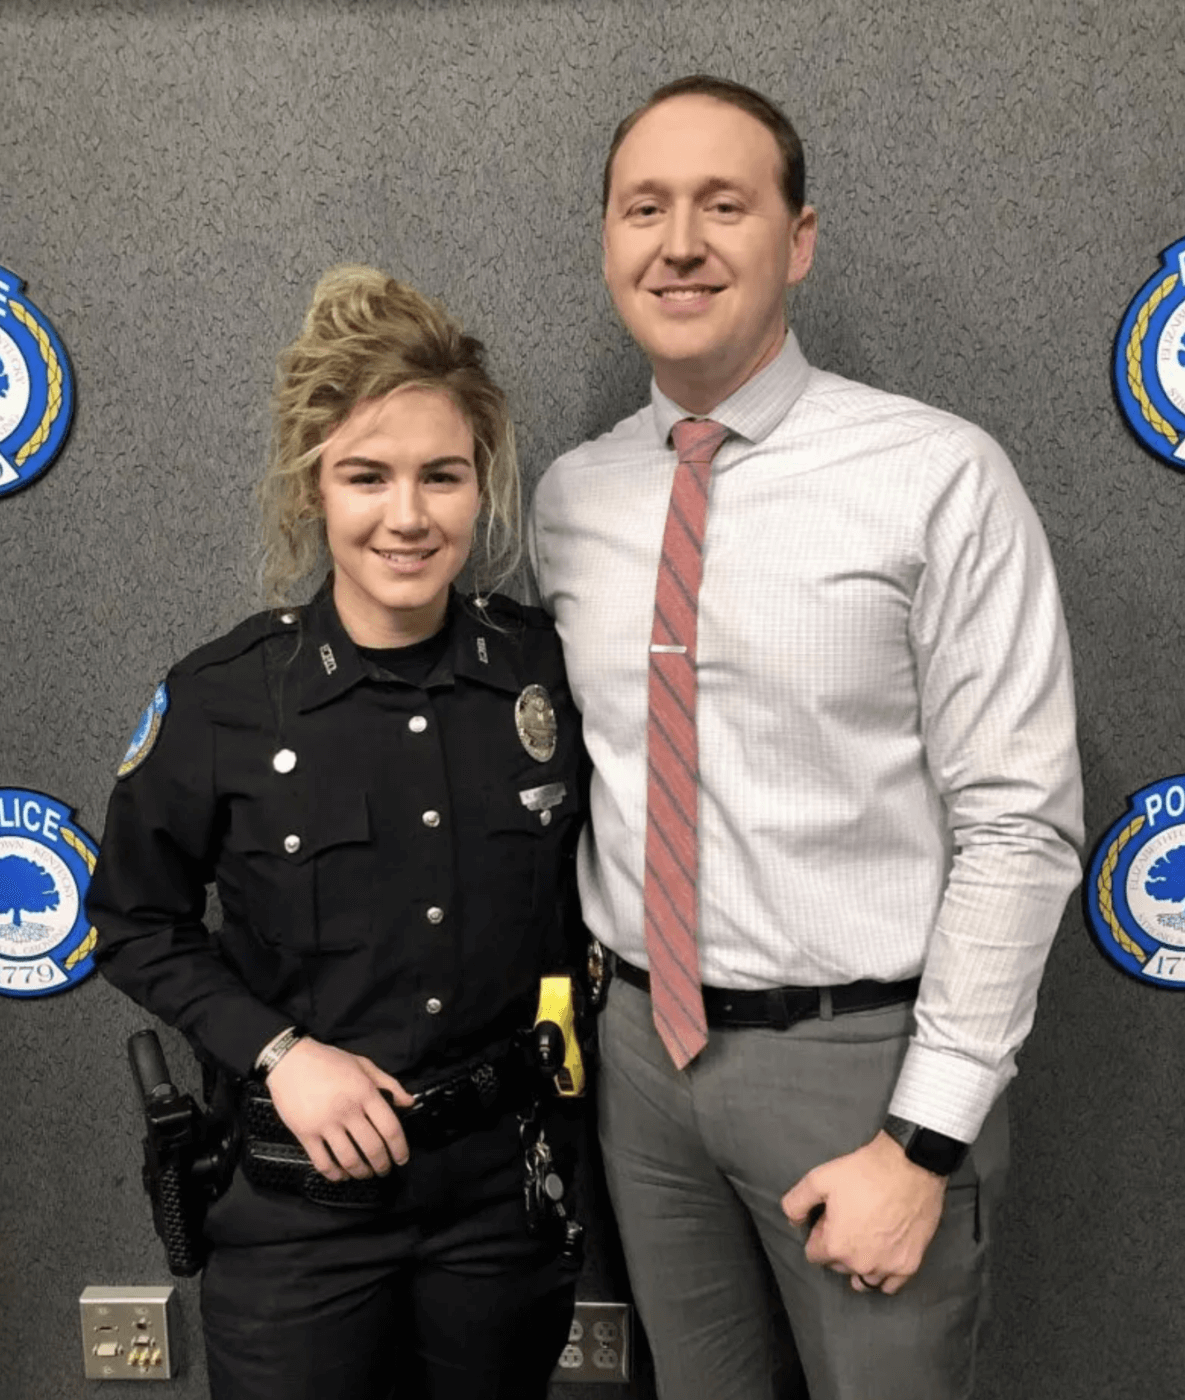 Nicole McKeown and Chase McKeown of the Elizabethtown Police Department